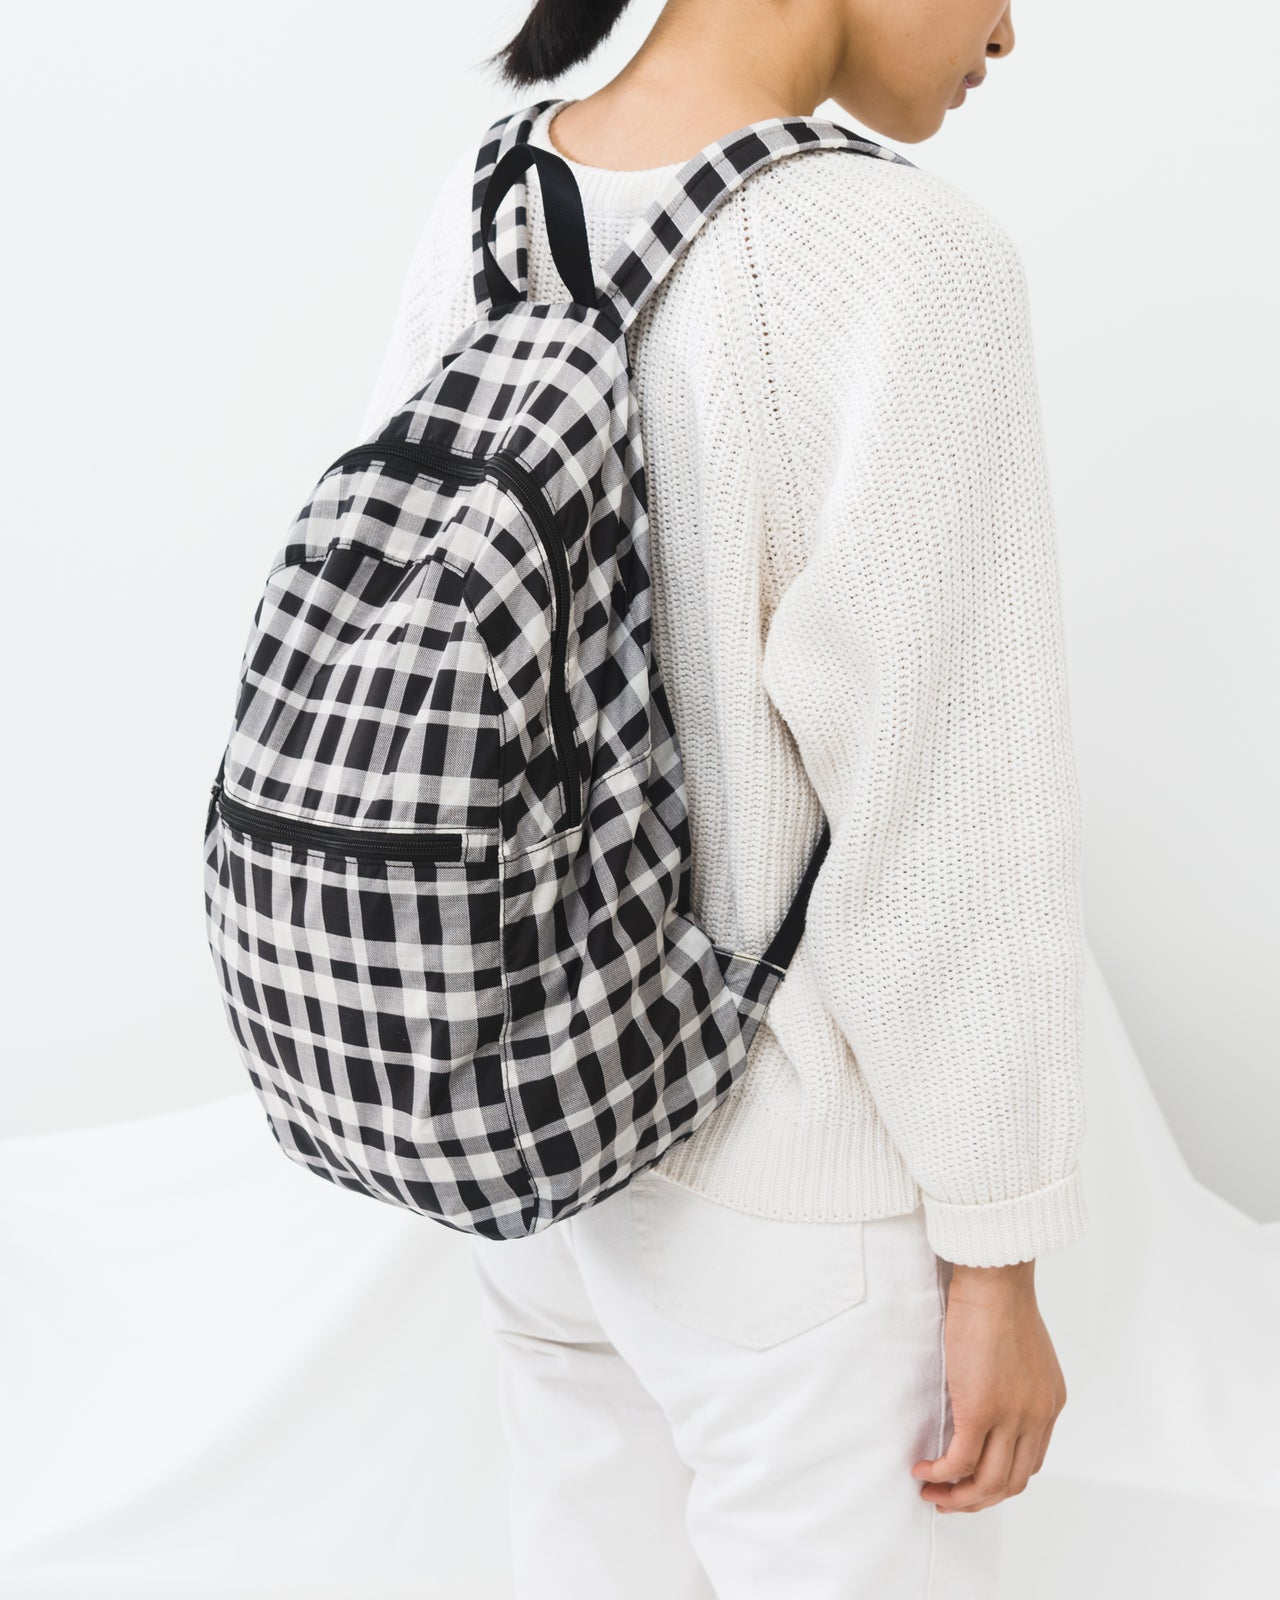 Packable Backpack - Plaid